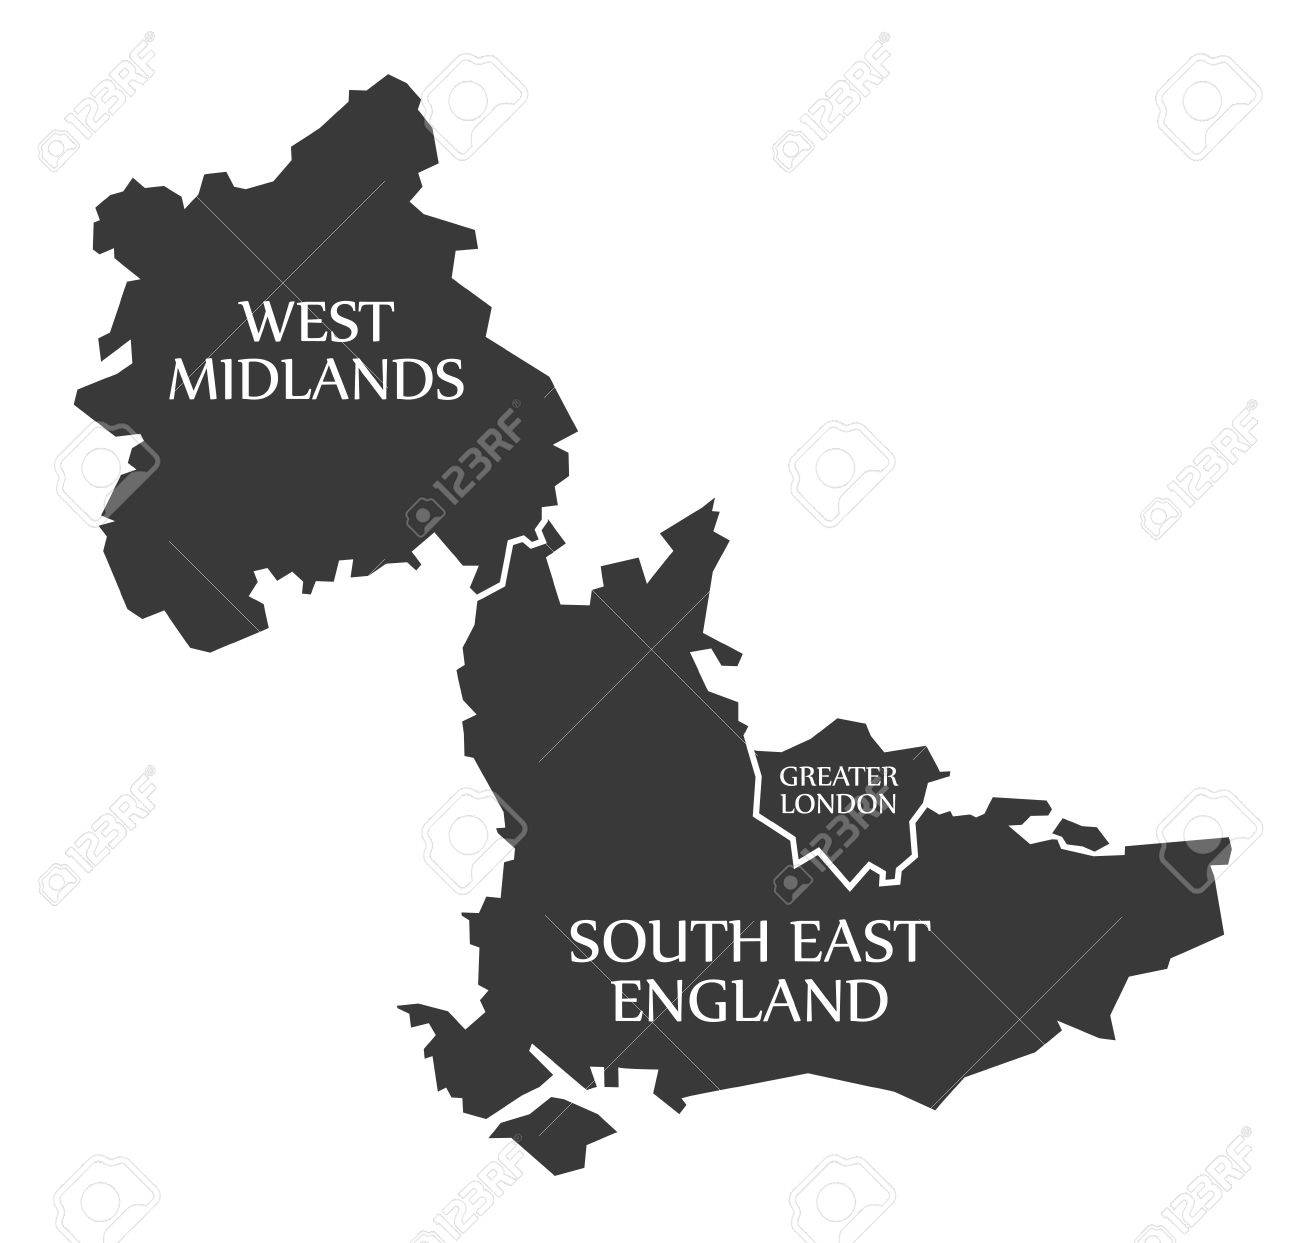 West Midlands Greater London South East England Map Uk